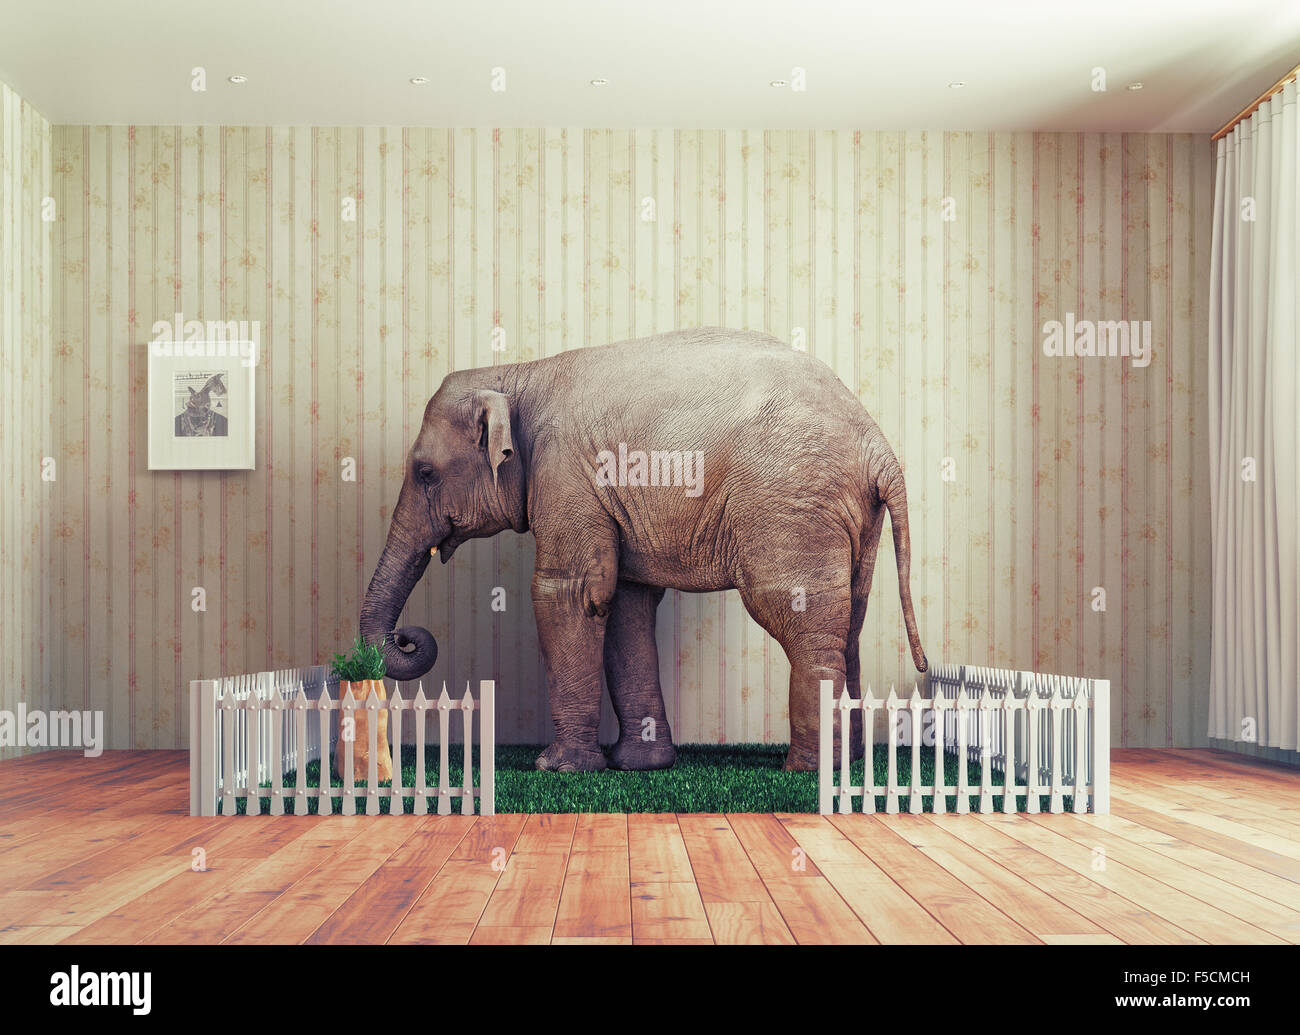 An Elephant calf as the pet. Photo combination concept - Stock Image